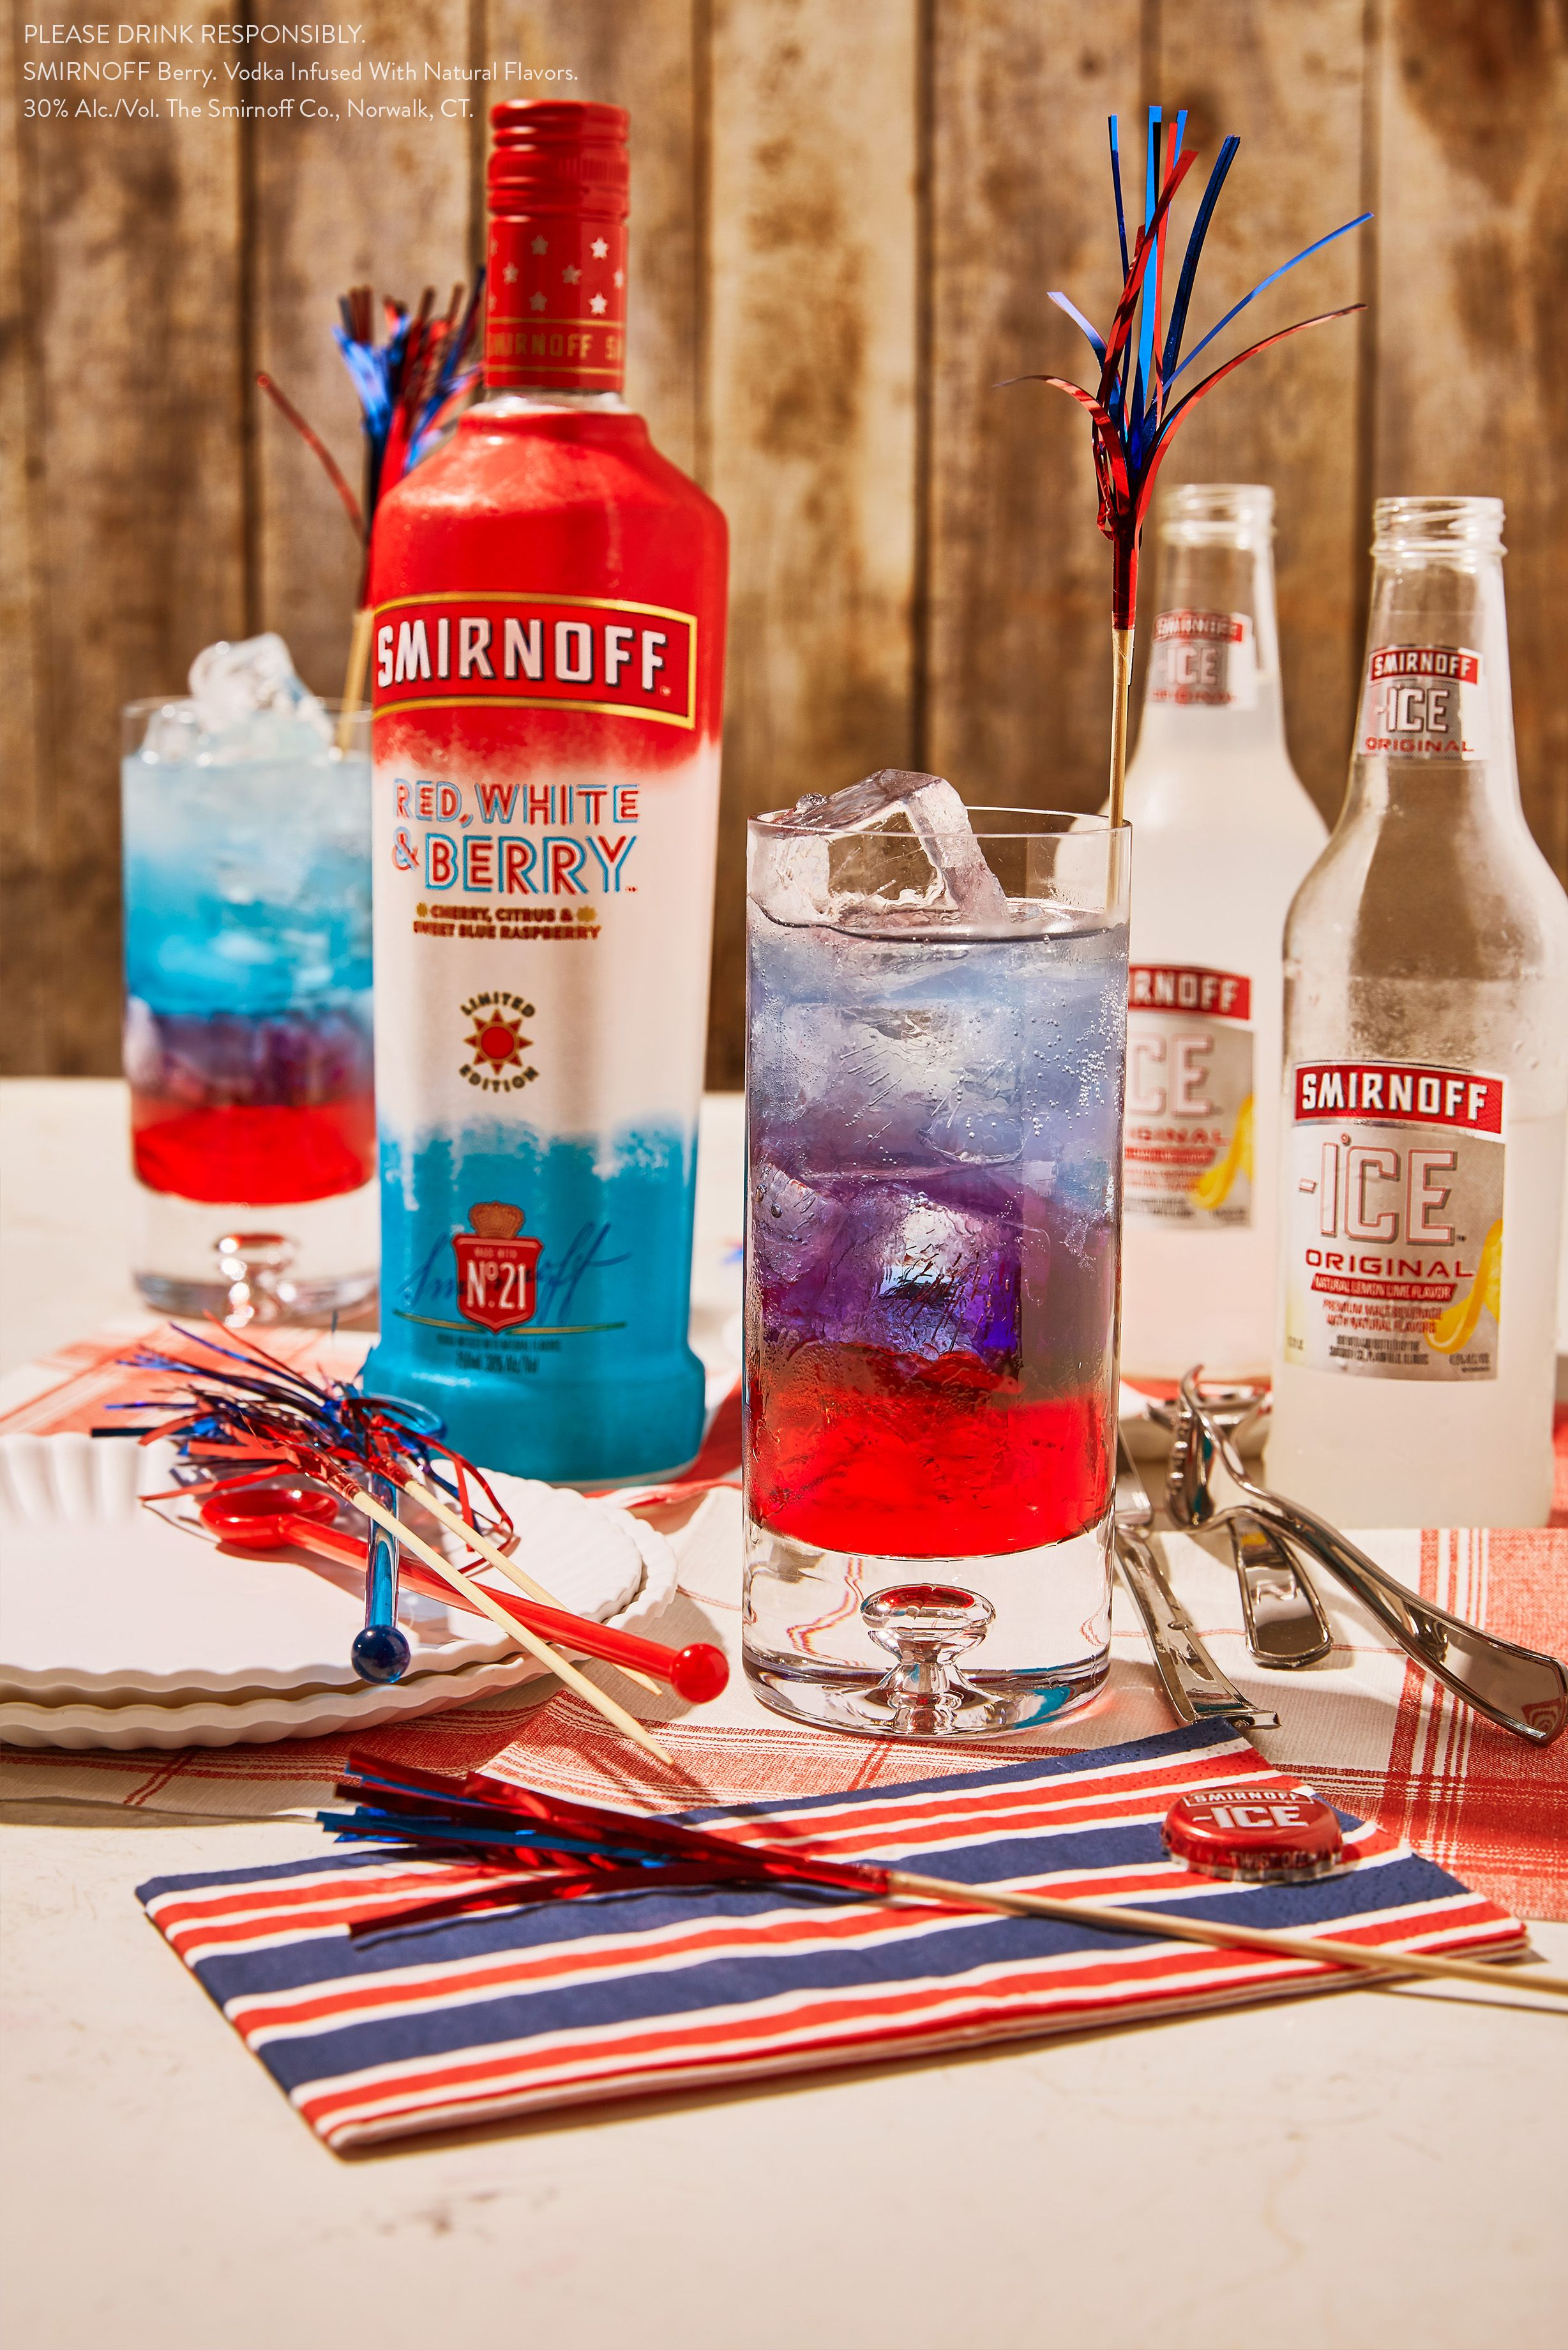 Discussion on this topic: Smirnoffs Oversized Holiday Ornament Bottles Are the , smirnoffs-oversized-holiday-ornament-bottles-are-the/